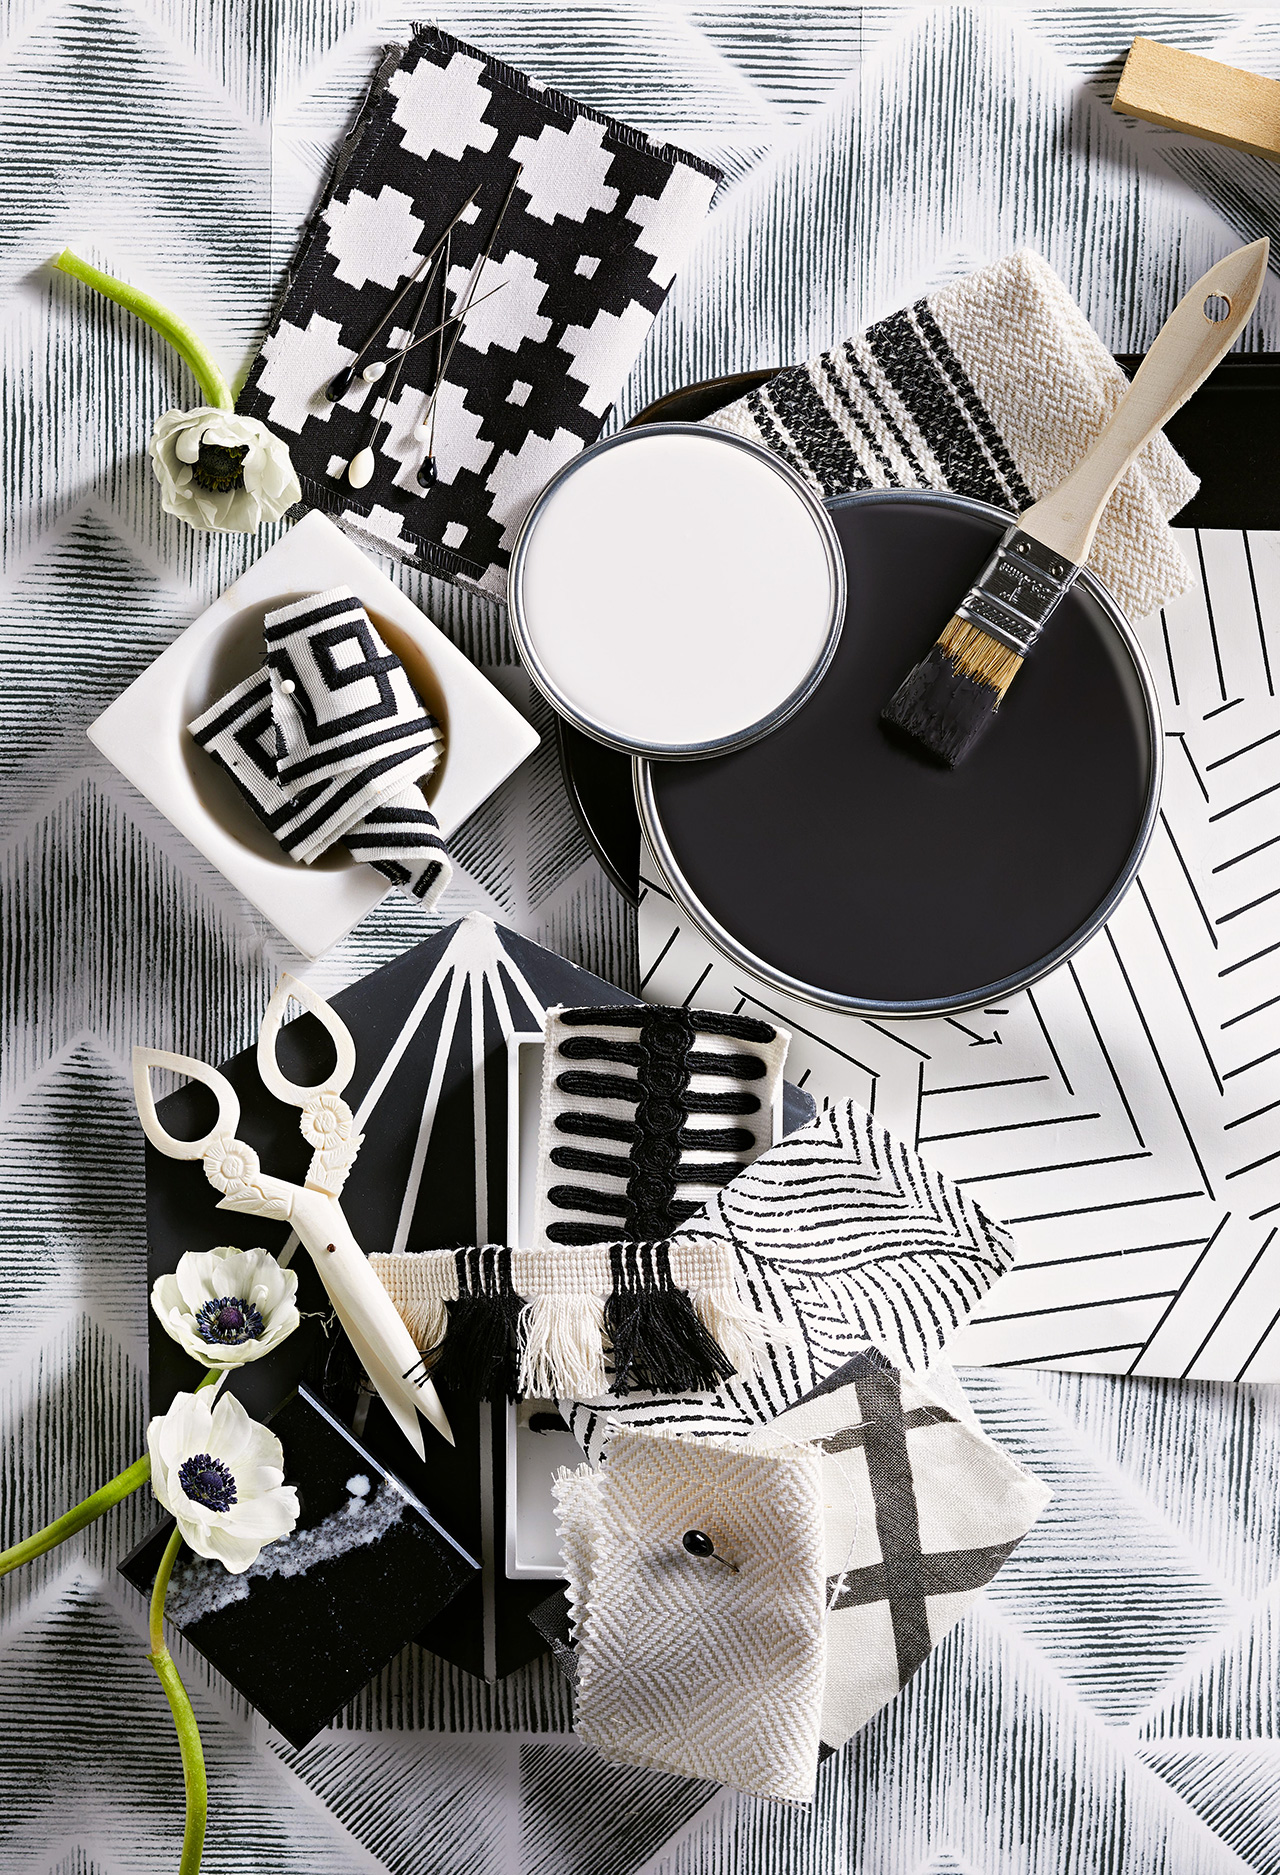 various black and white crafting material and white flowers